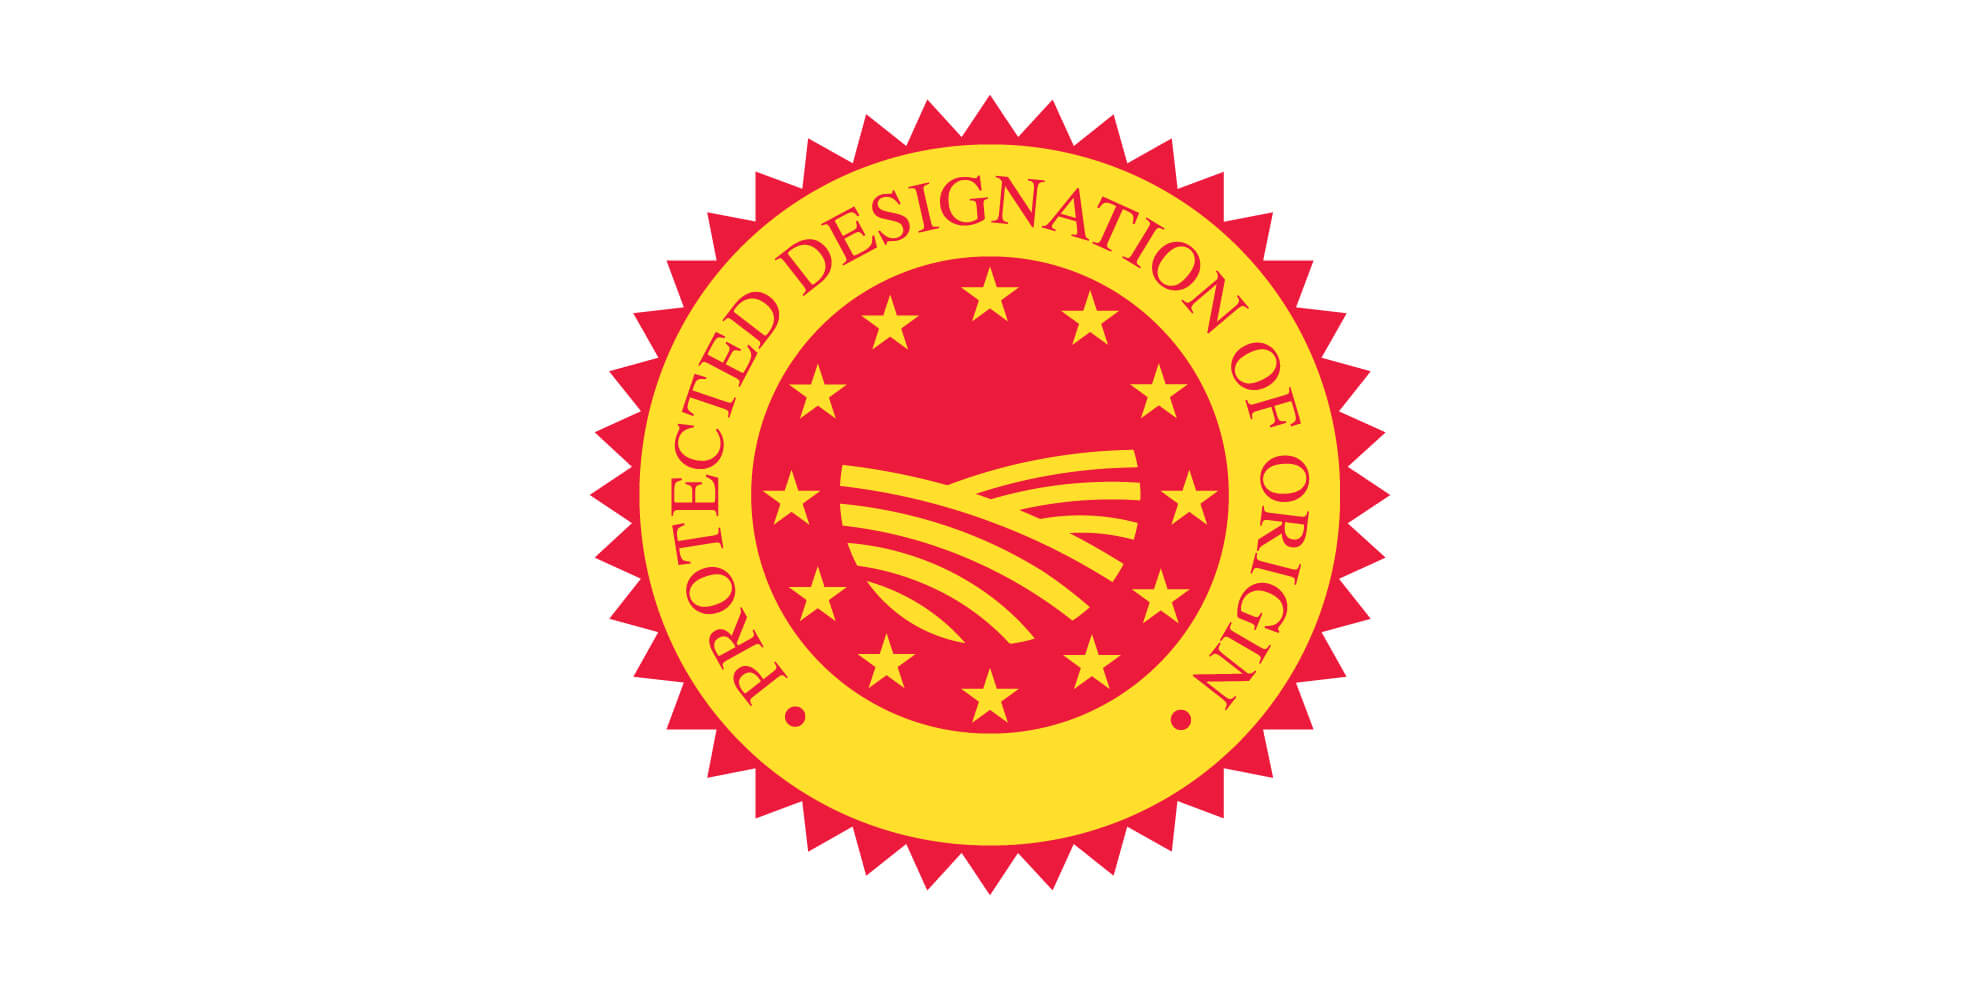 Protected Designation of Origin PDO